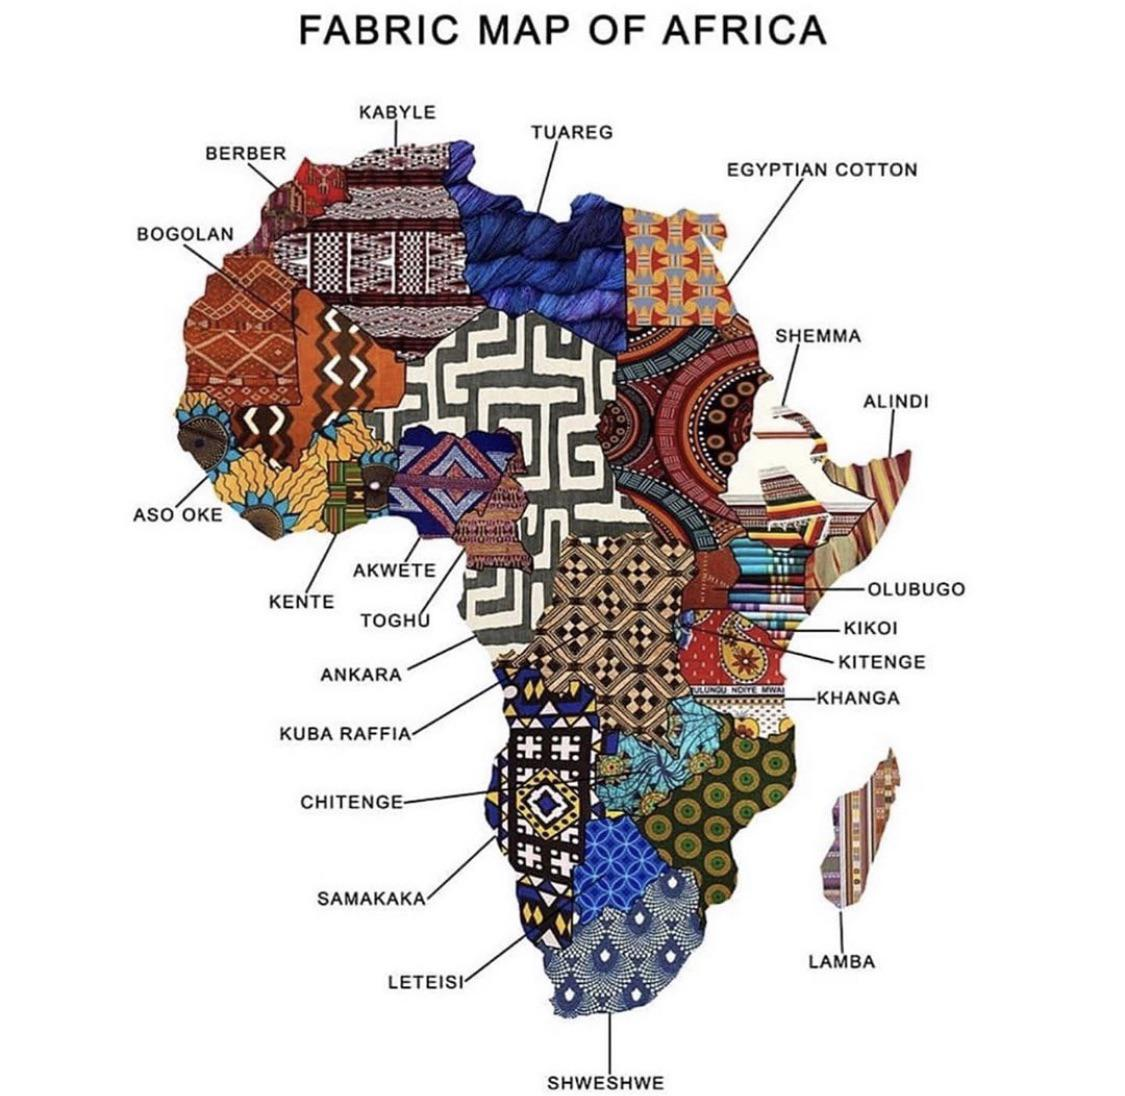 The World's Going Mad for This Fabric Map of Africa